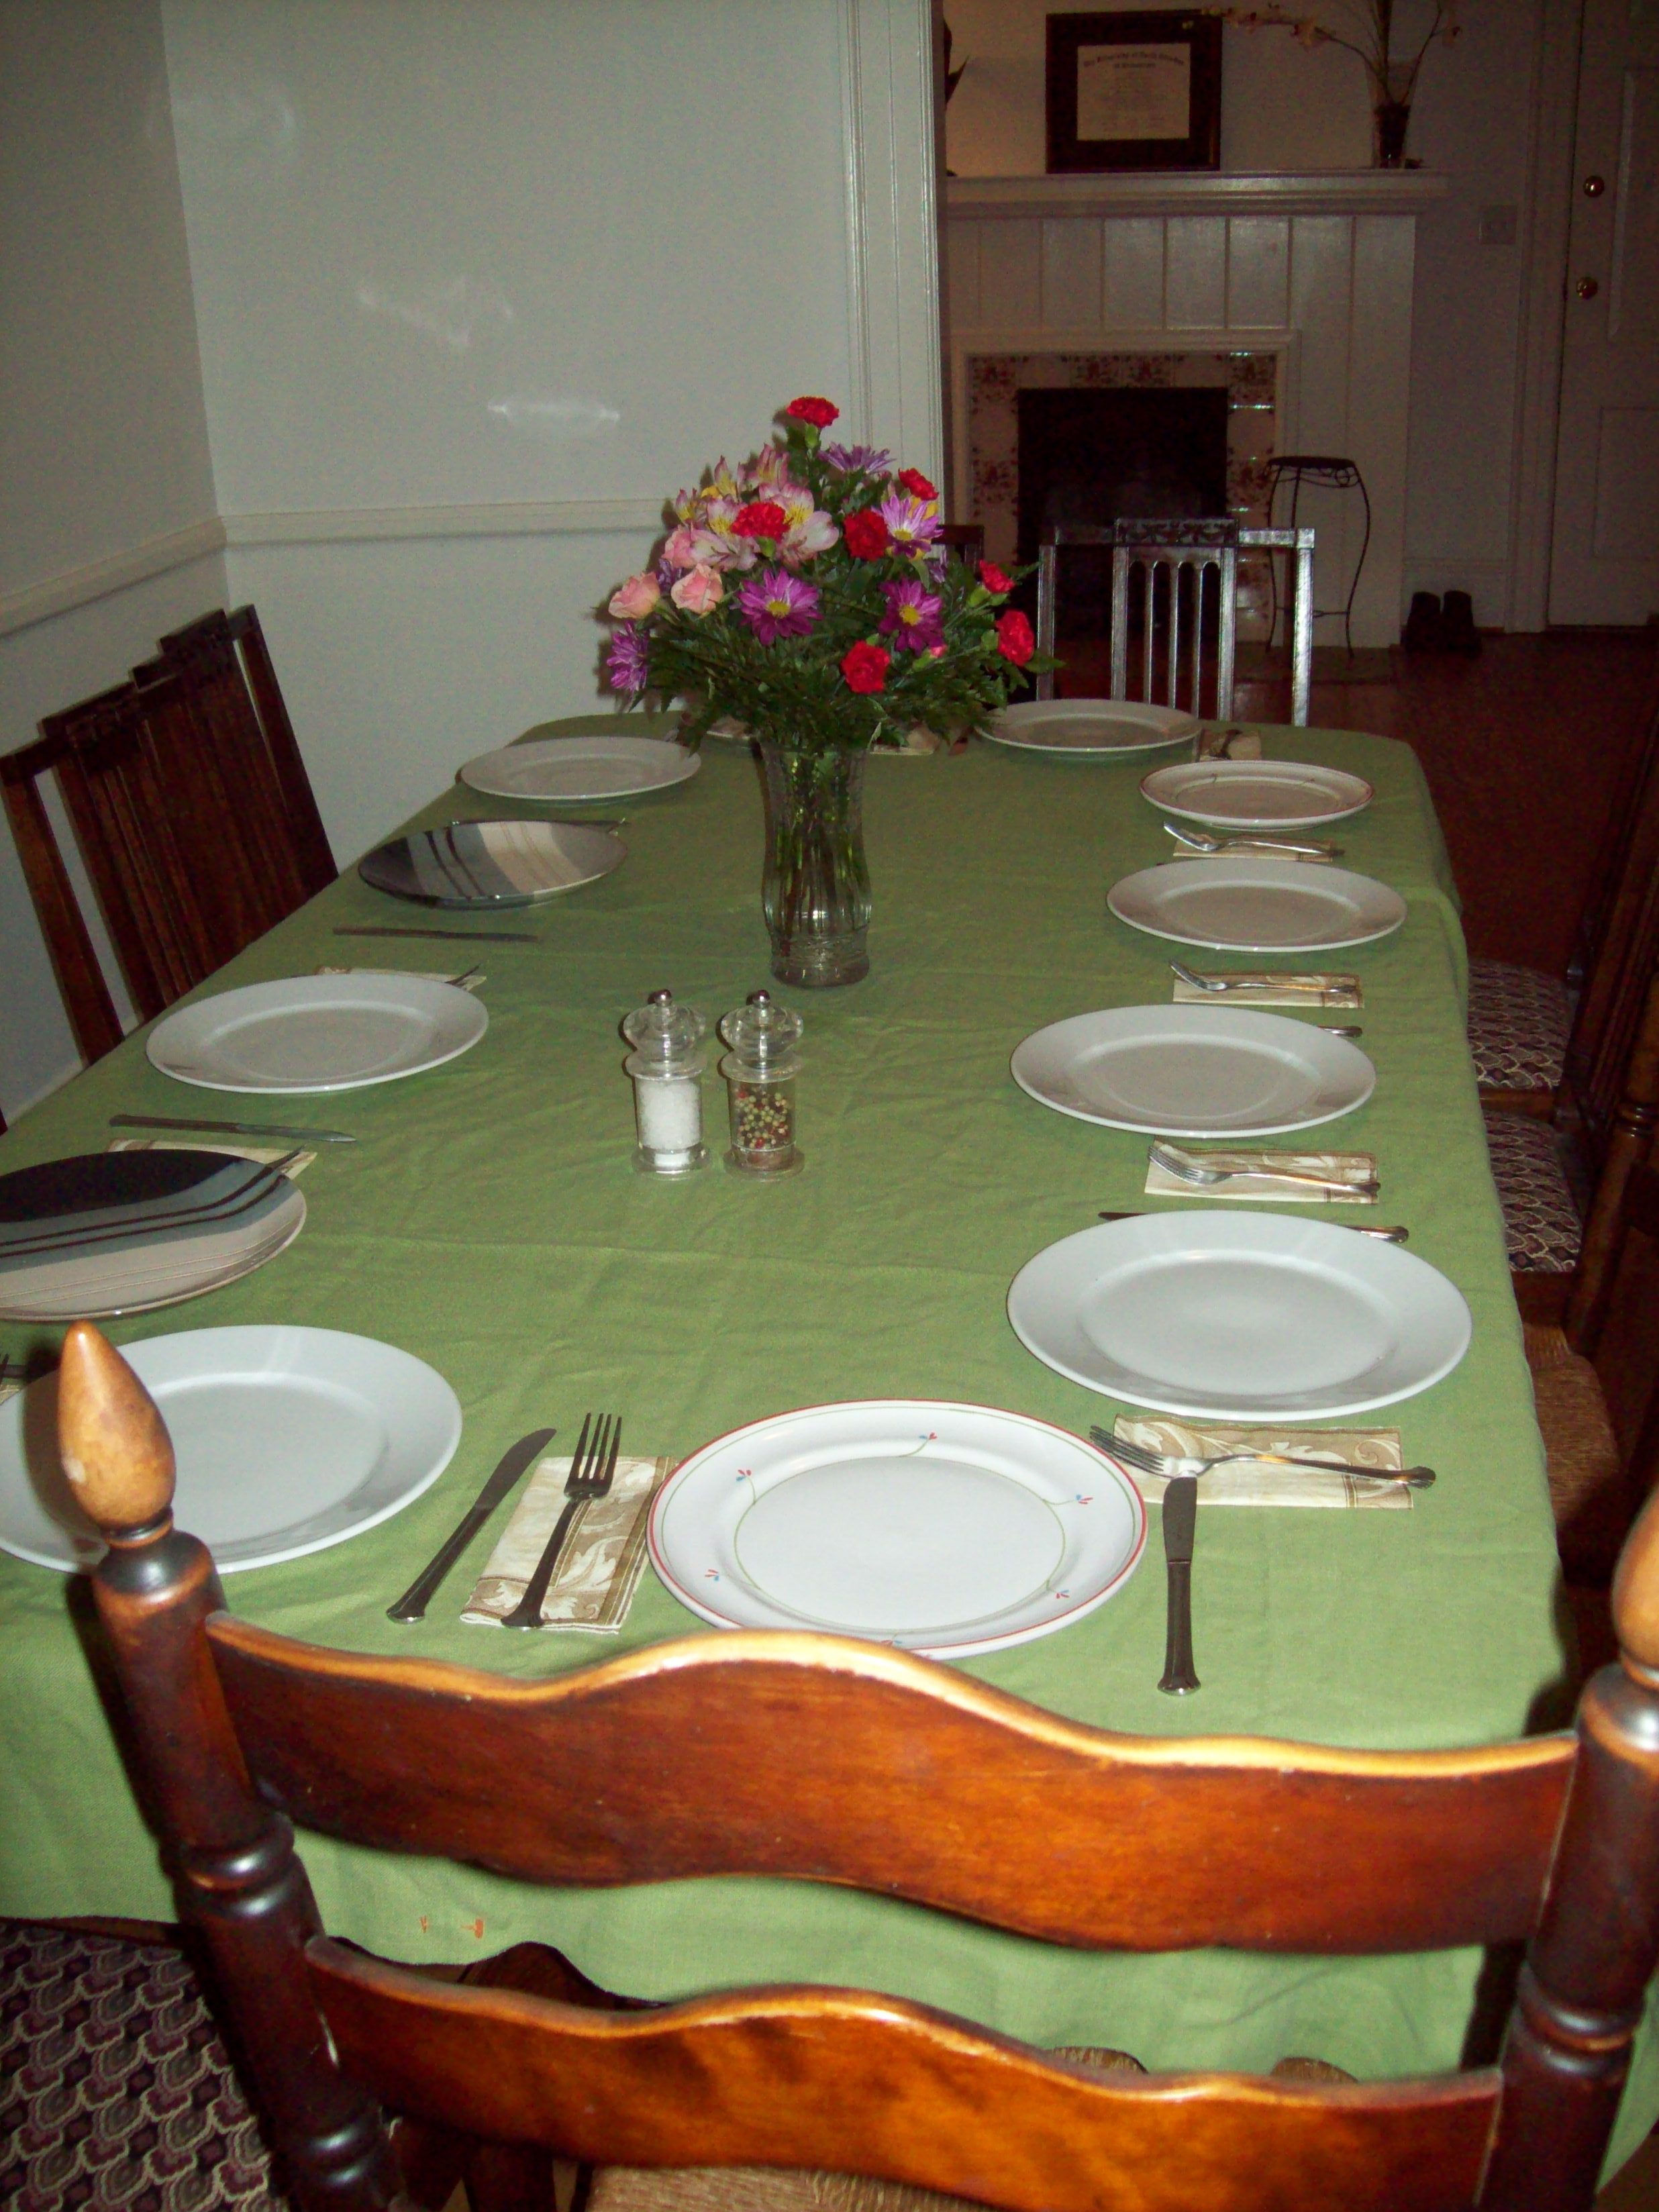 what do you enjoy doing english language setting the table is a chore photo by wt instructor jln what do you